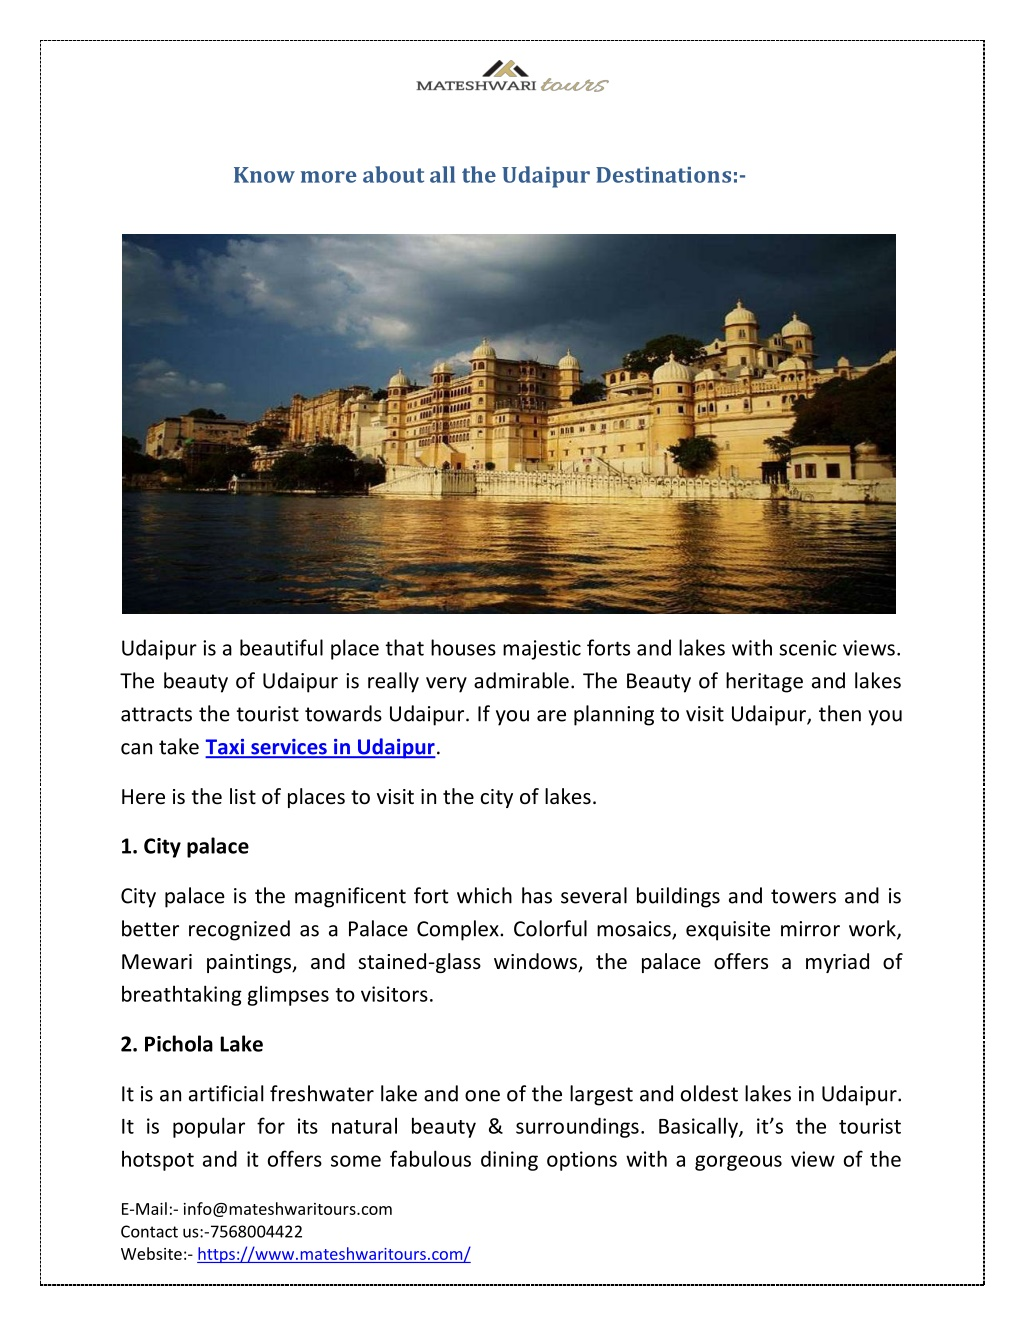 know more about all the udaipur destinations l.